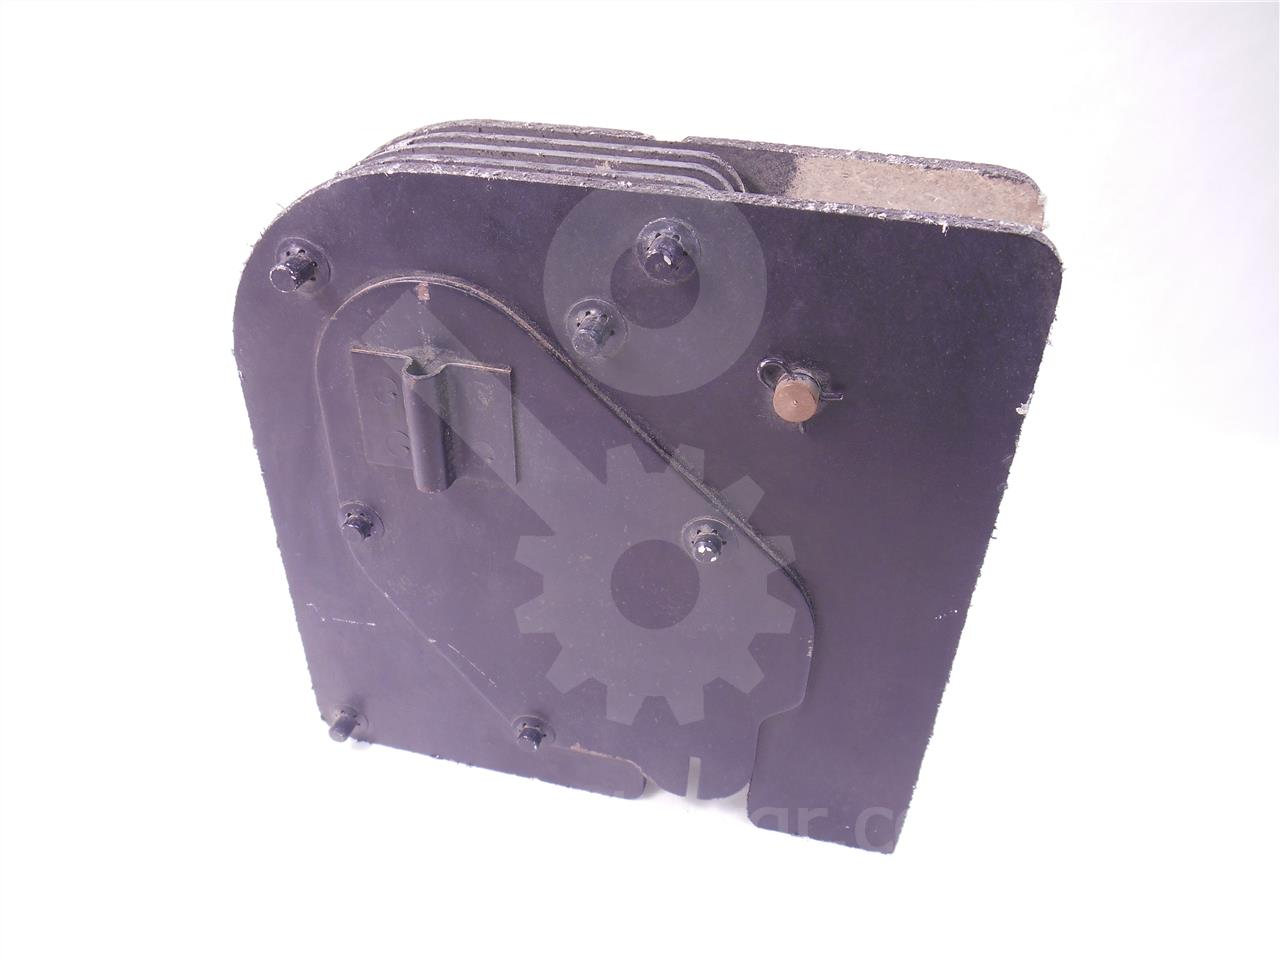 5506 ITE ARC CHUTE ASSEMBLY FOR KB-600, STEEL BACK